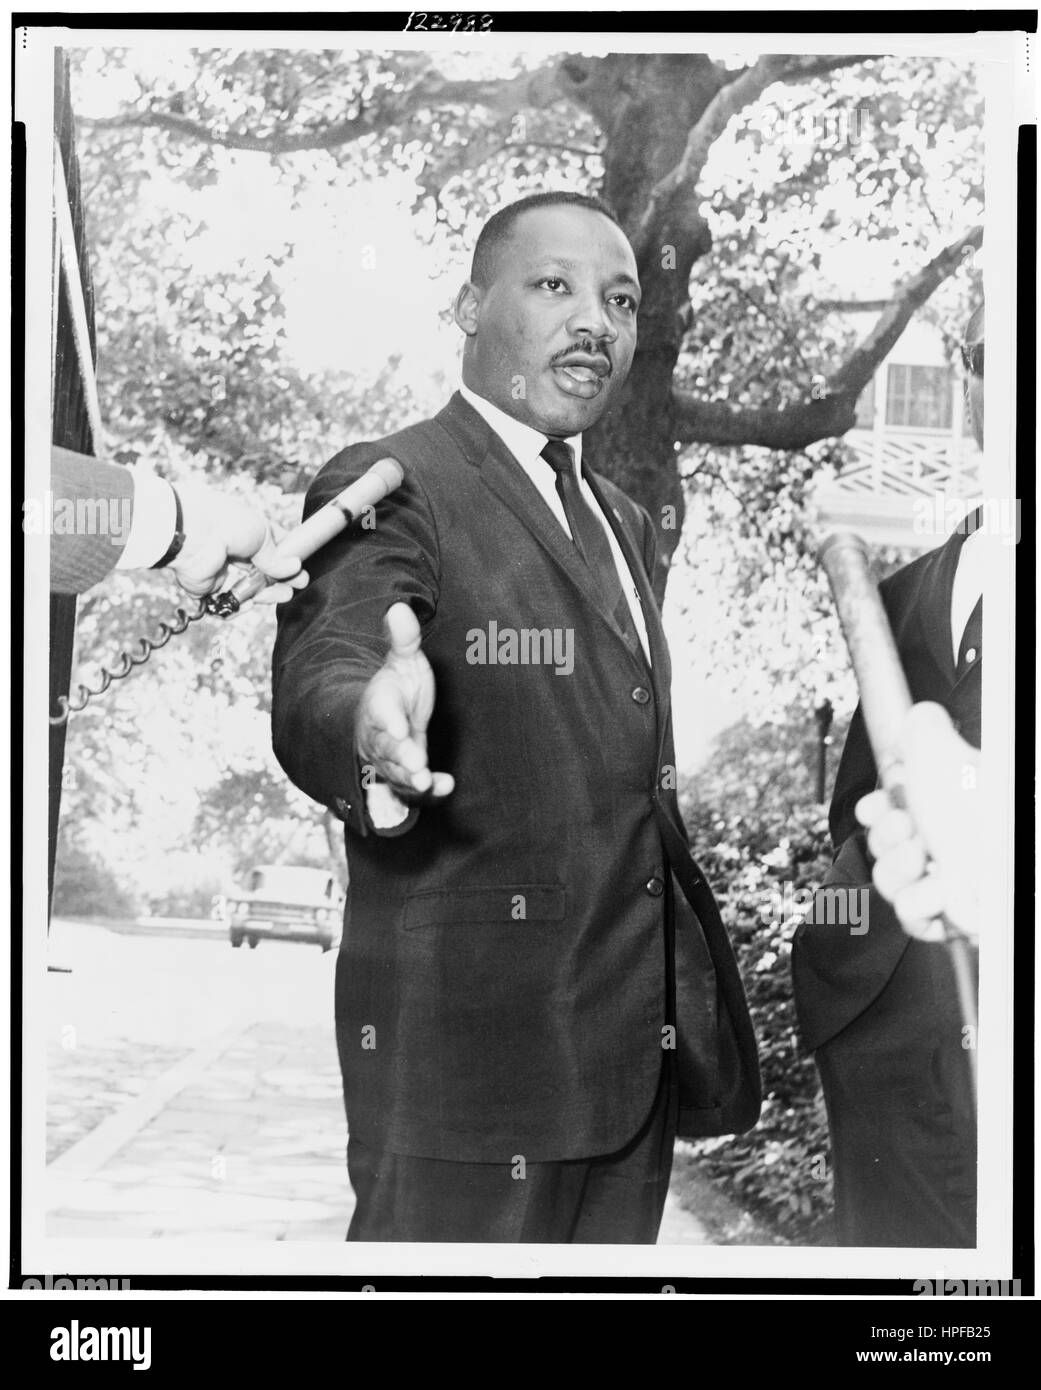 Rev Martin Luther King, Jr at Gracie Mansion press conference, New York, NY, 07/30/1964. Stock Photo